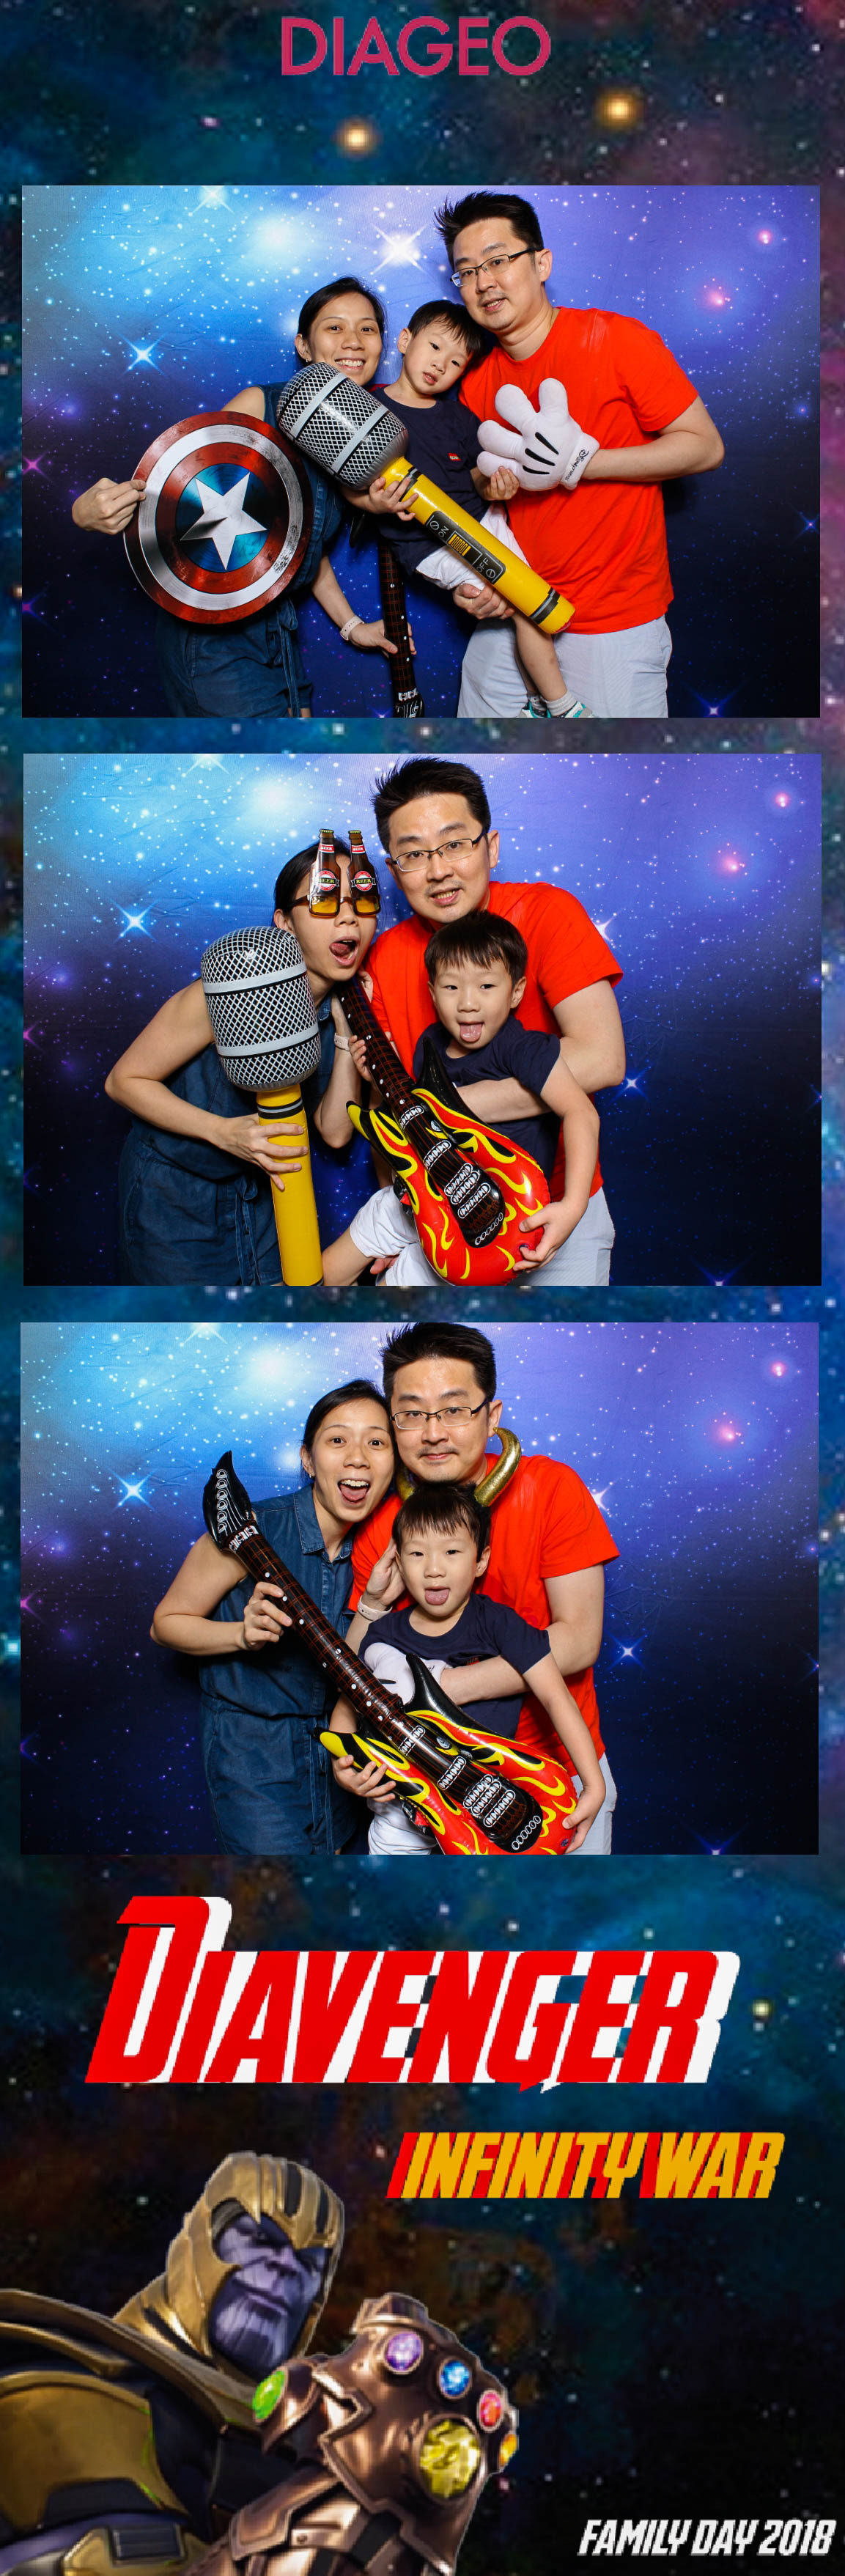 Photo booth 2306-15